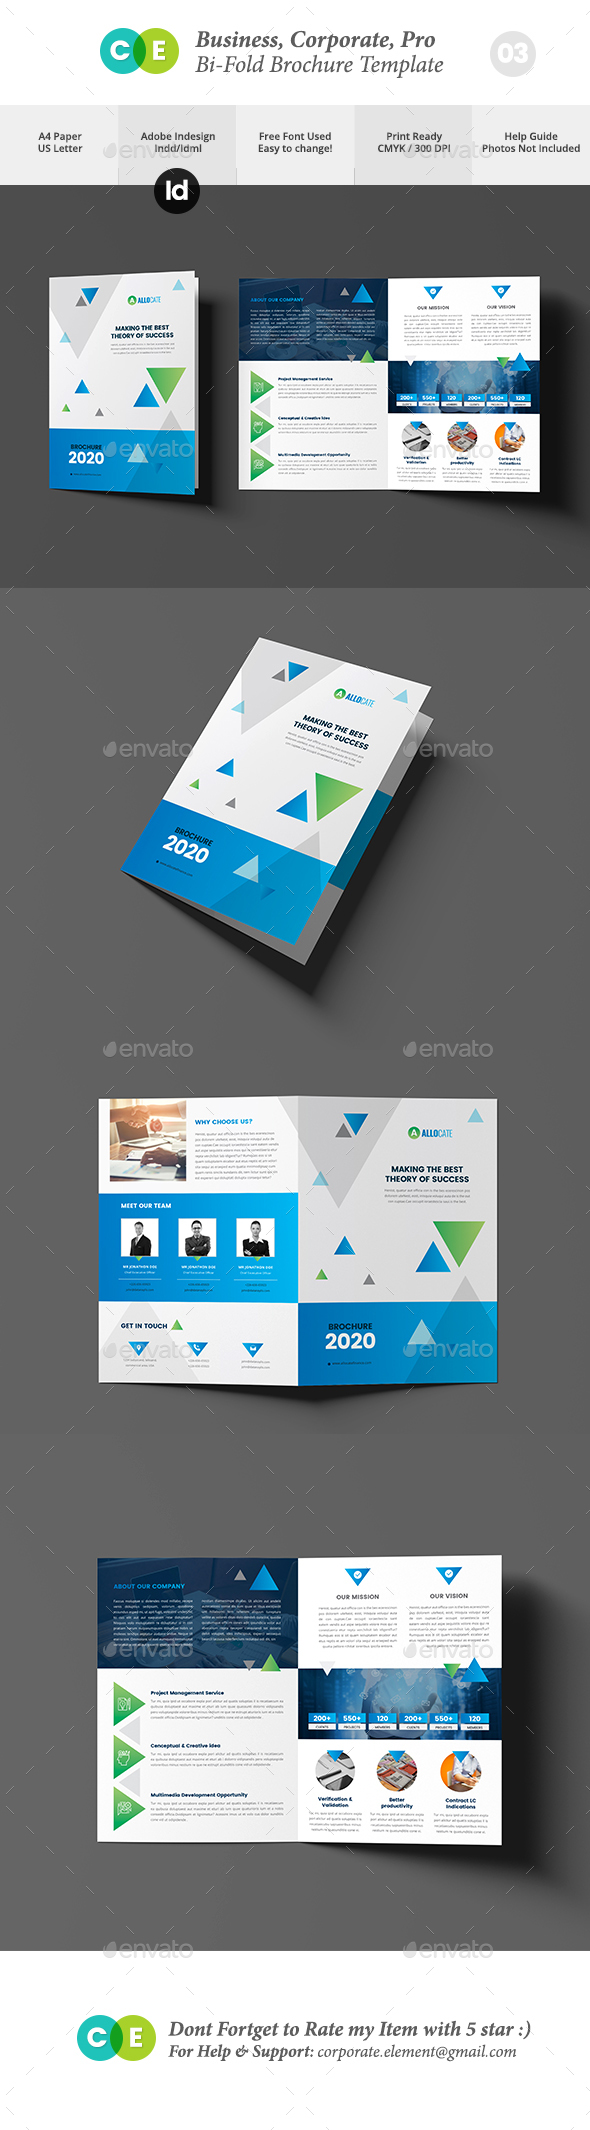 Corporate Business Pro Bi-Fold Brochure V03 - Brochures Print Templates